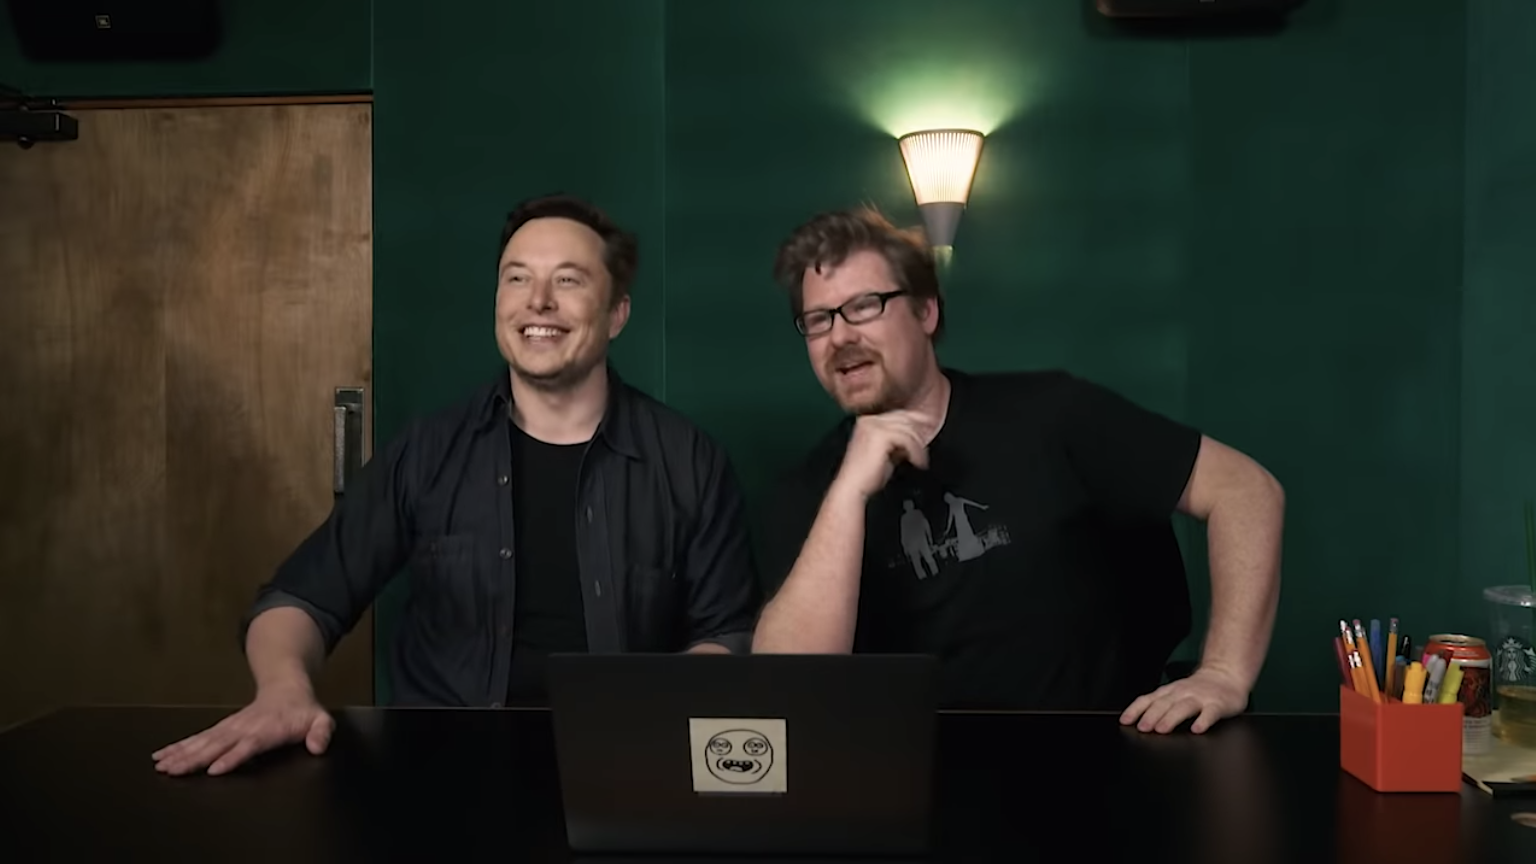 techcrunch.com - Kirsten Korosec - Elon Musk finally hosted meme review with the co-creator of Rick and Morty